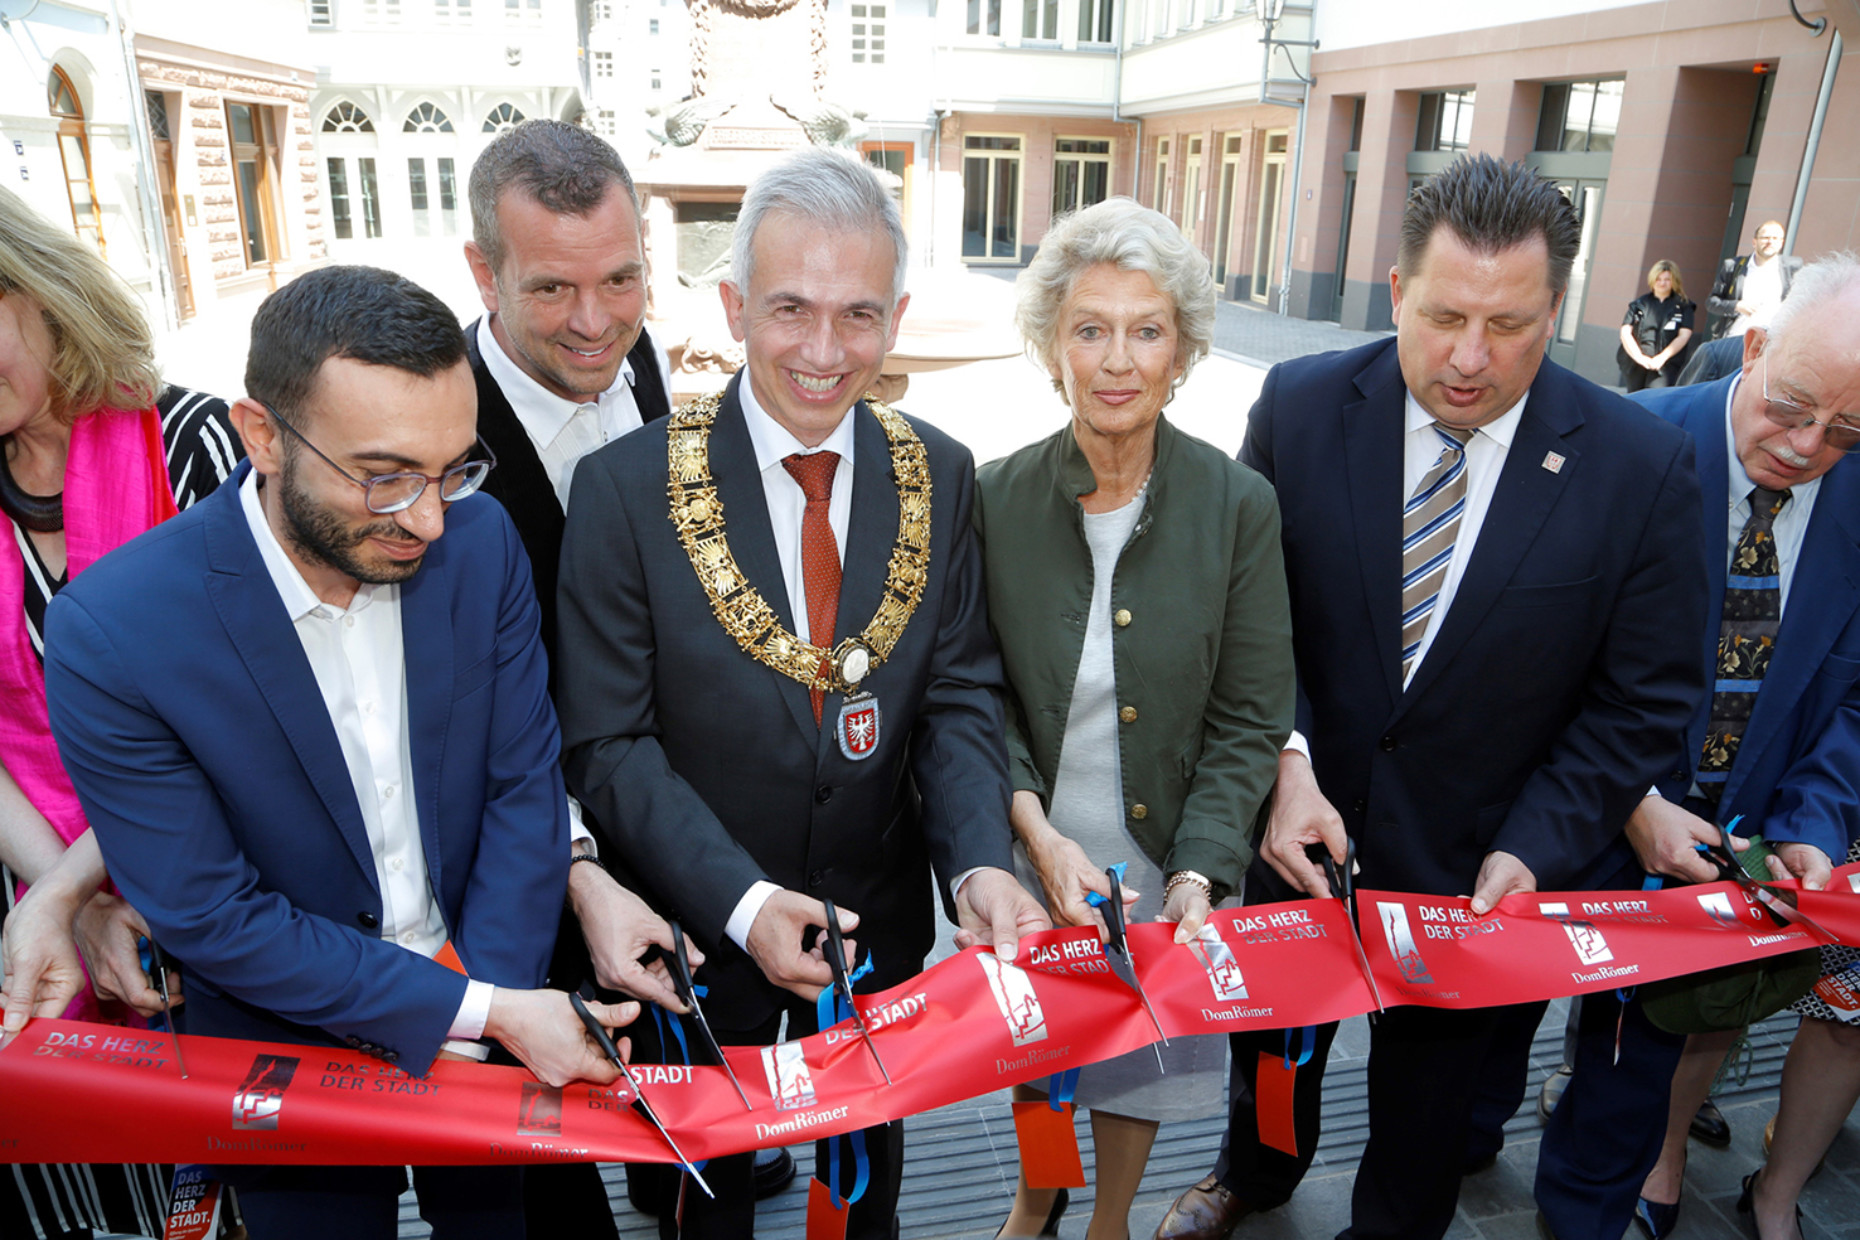 Symbolic opening of the old town by Frankfurt's Lord Mayor Peter Feldmann (with chain of office) and his predecessor Petra Roth.​​